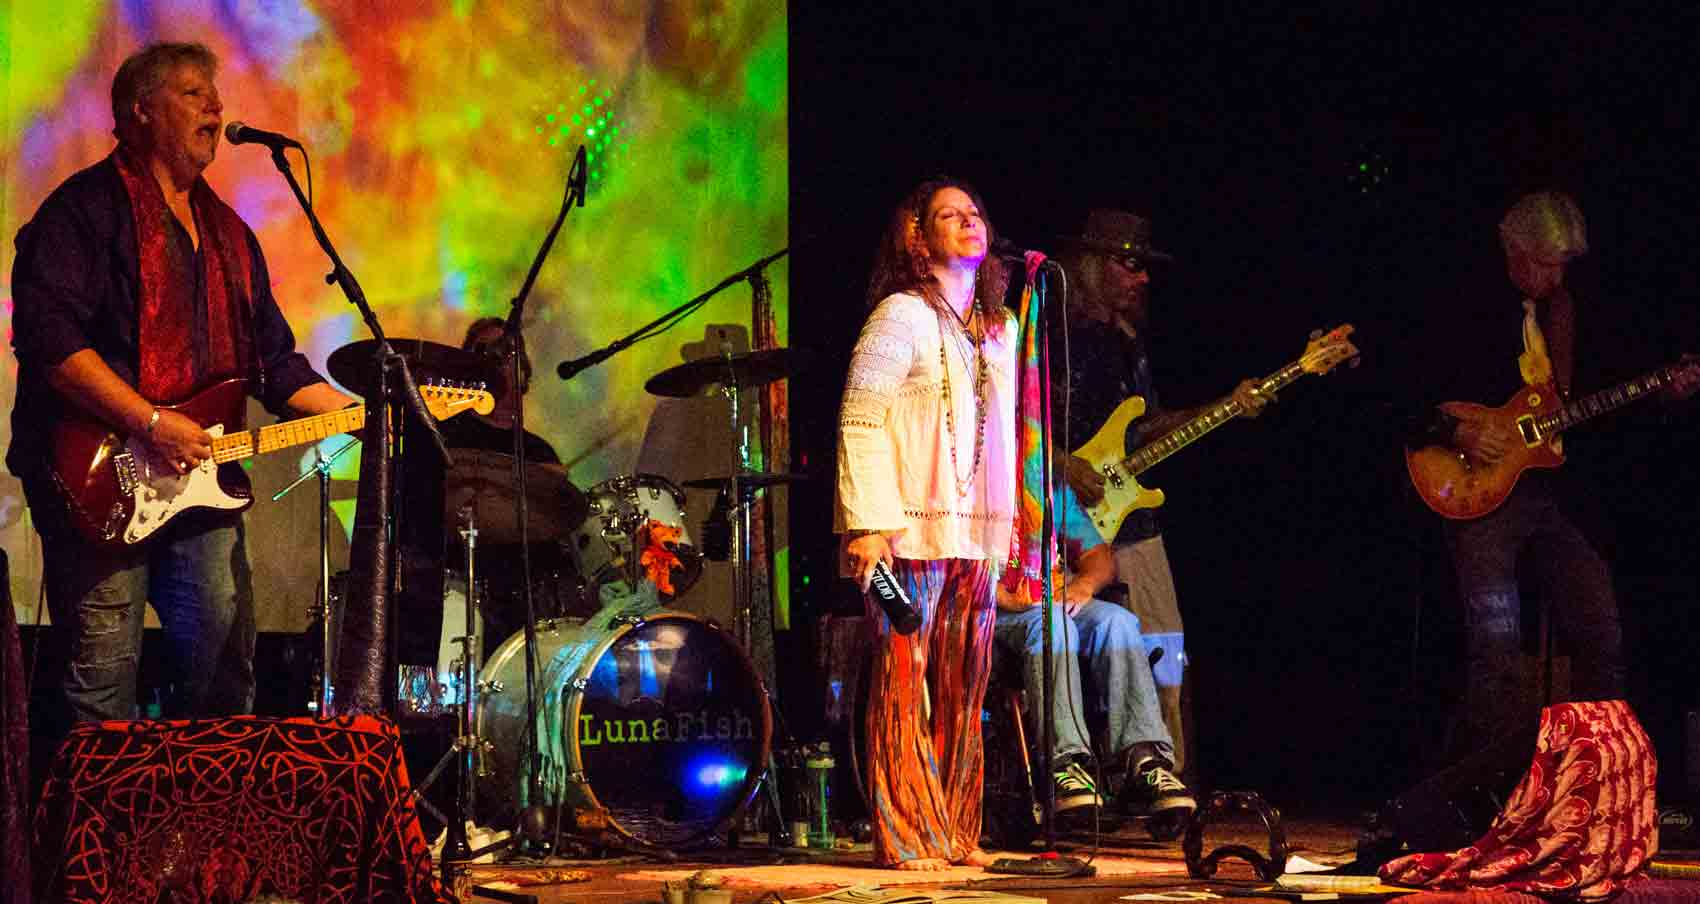 Home | LunaFish | Rock'n Roll Band | Jeff Fish | Livermore, CA